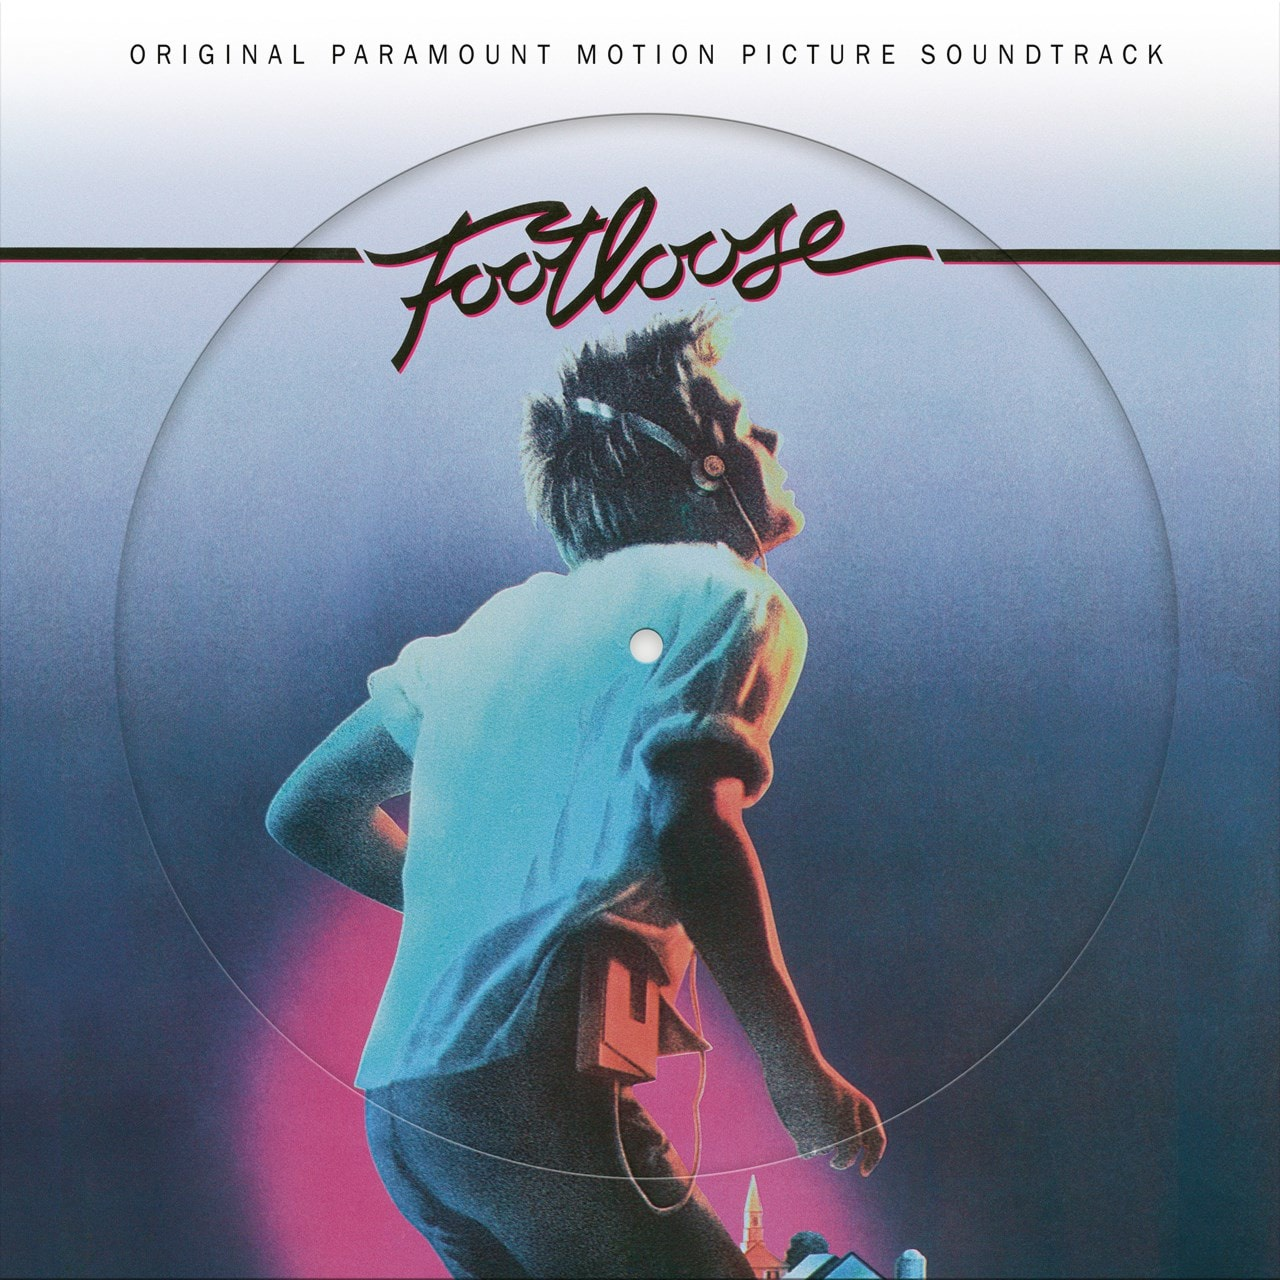 VARIOUS ARTISTS - FOOTLOOSE (ORIGINAL PARAMOUNT MOTION PICTURE SOUNDTRACK PICTURE DISC )